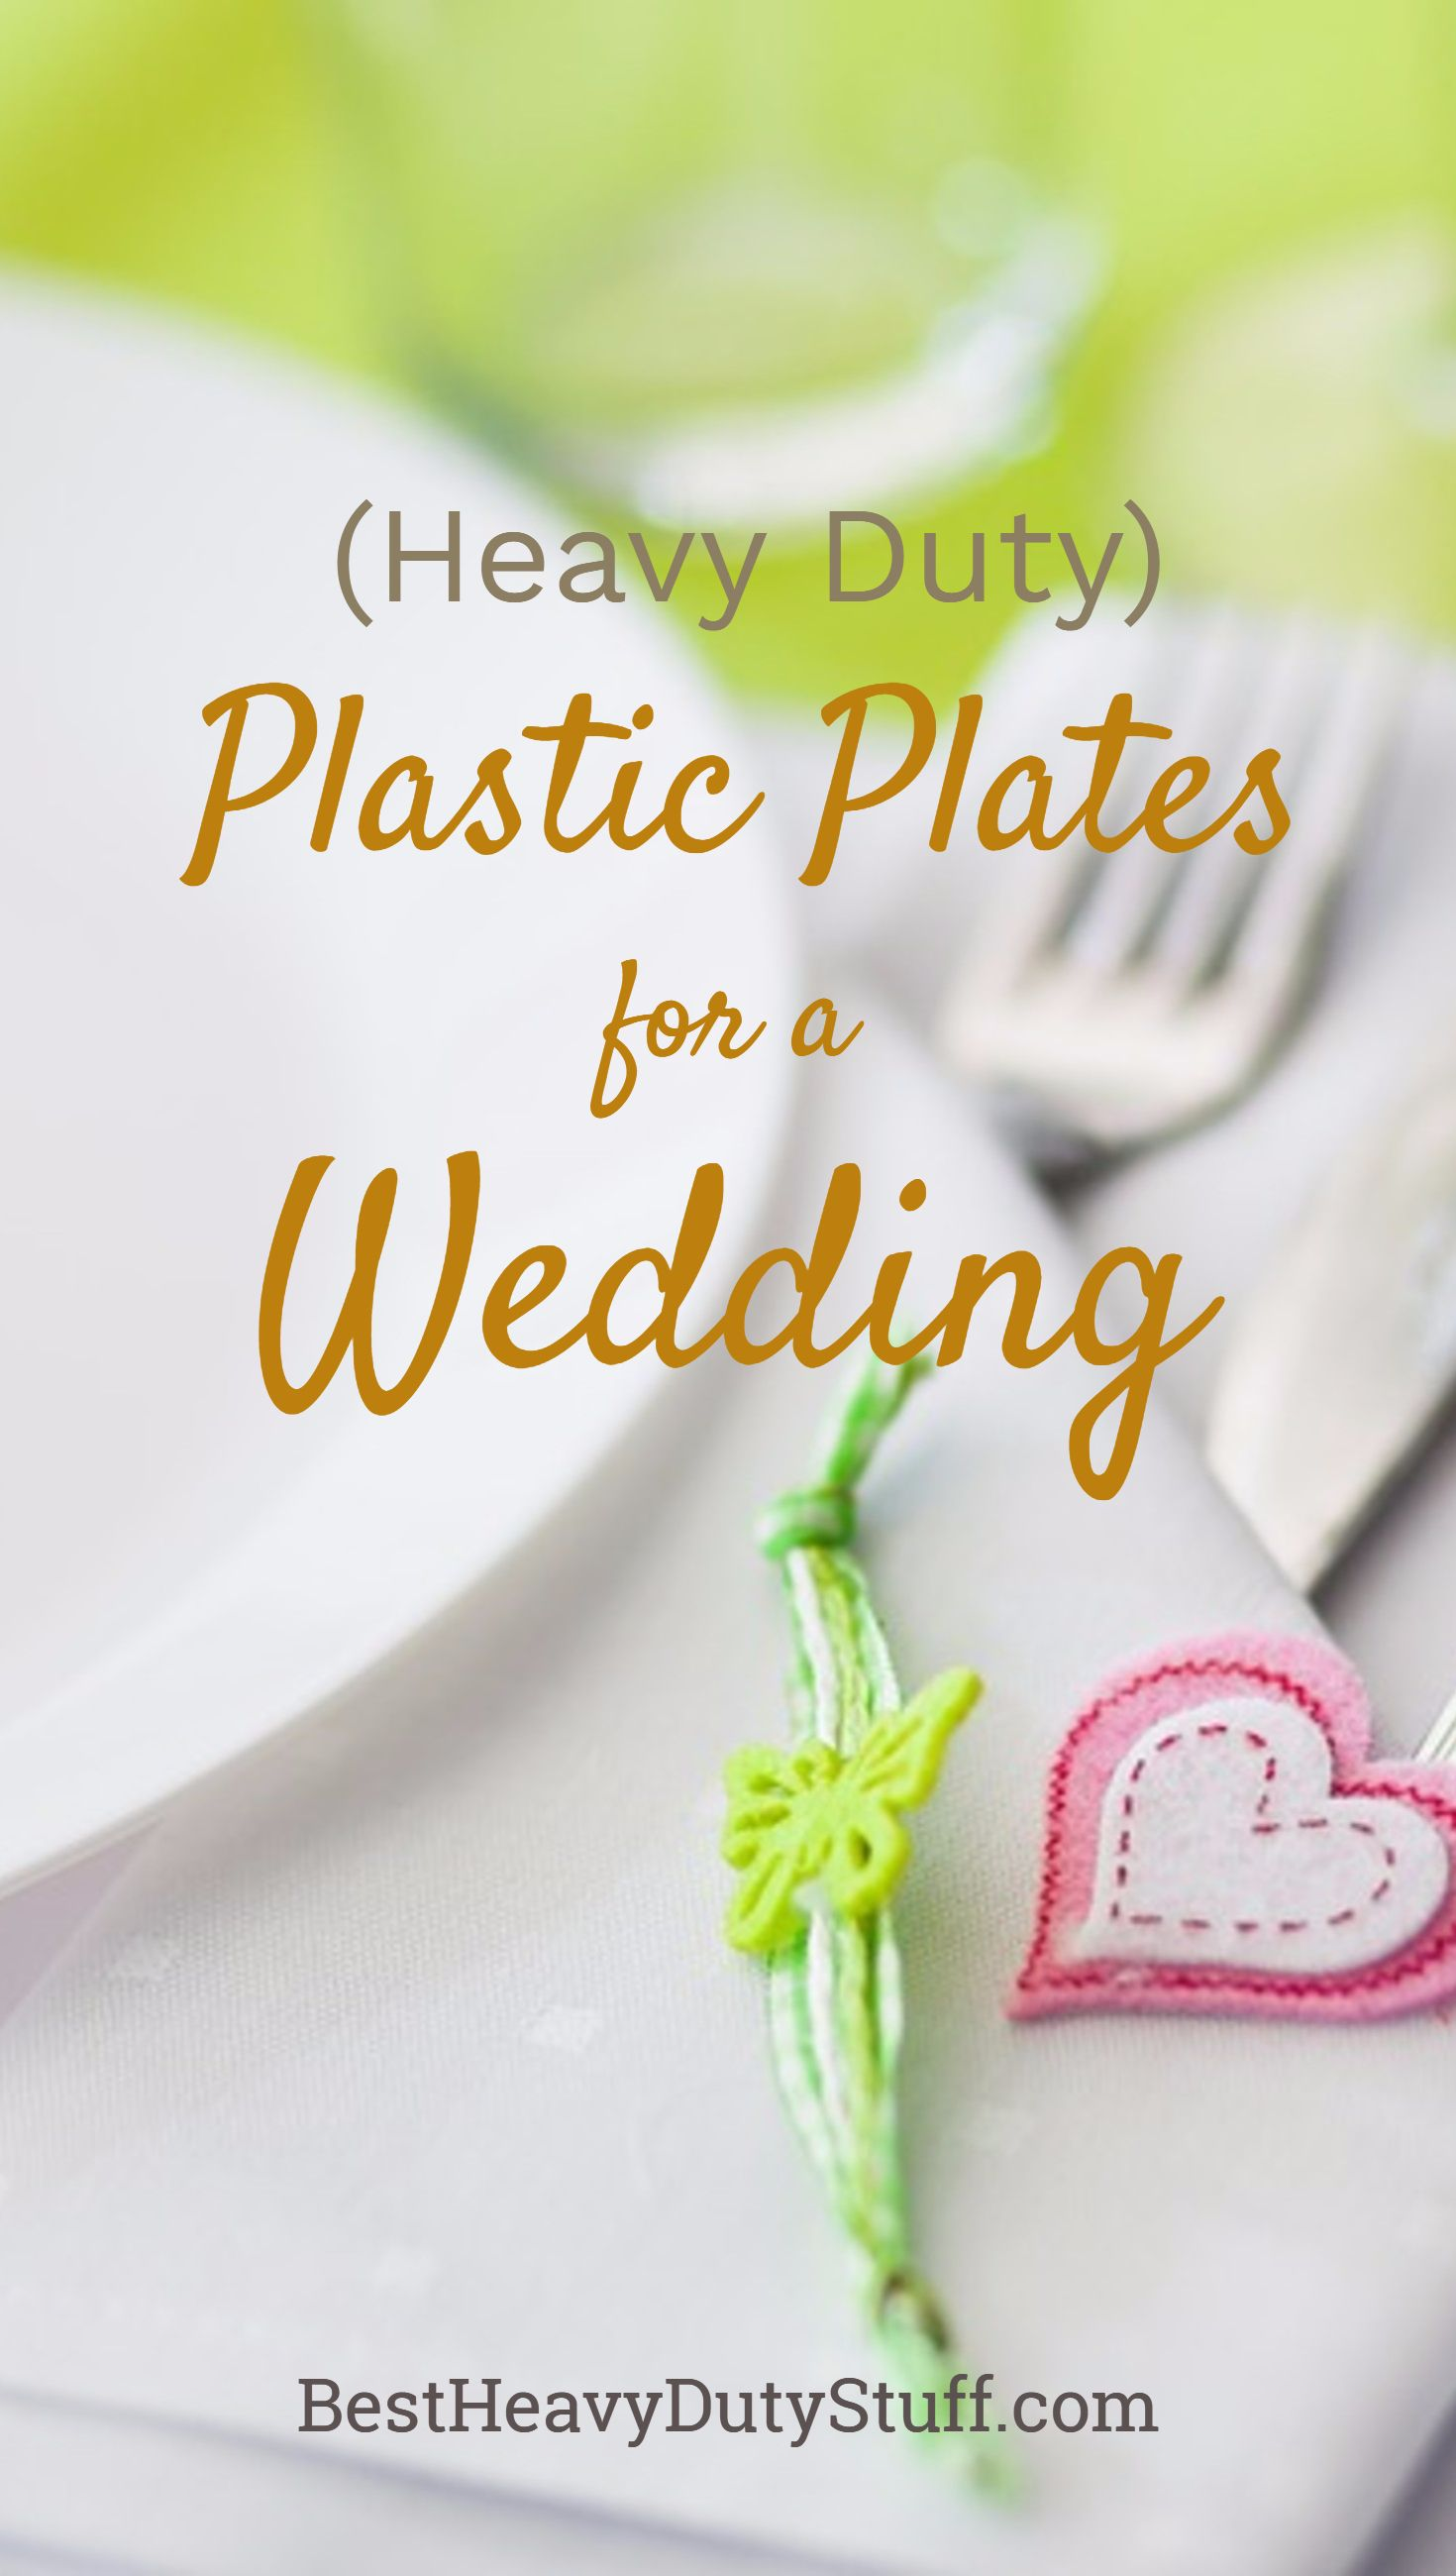 Elegant plastic plates for a wedding that are strong and durable for any type of food  sc 1 st  Pinterest & Elegant plastic plates for a wedding that are strong and durable for ...